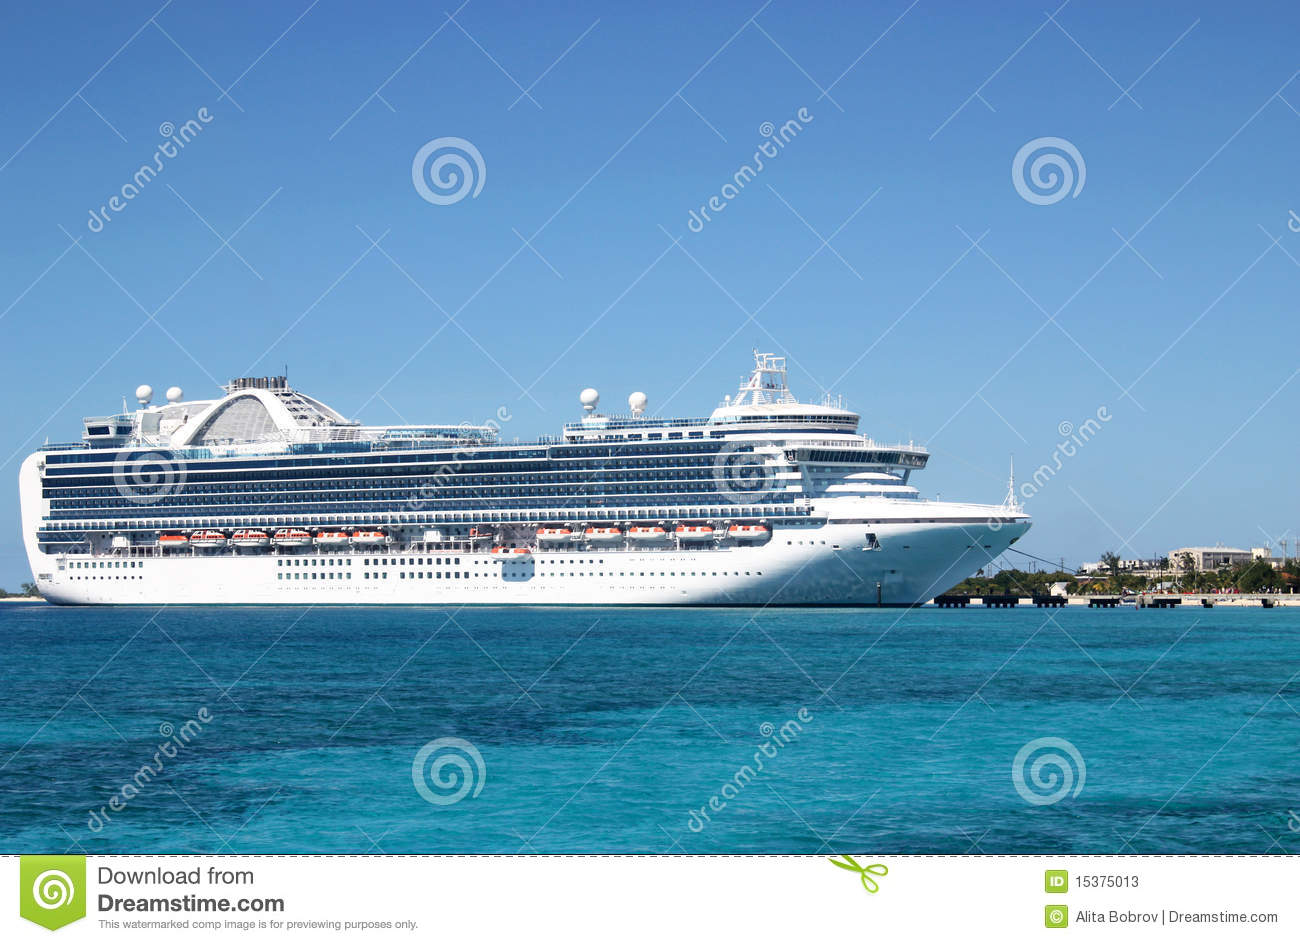 preparing for a tropical cruise vacation Packing for a cruise is one of the worst parts of your vacationthe only thing most cruise travelers dread more is unpacking when they get home to lessen this dread, a comprehensive packing list is essential.